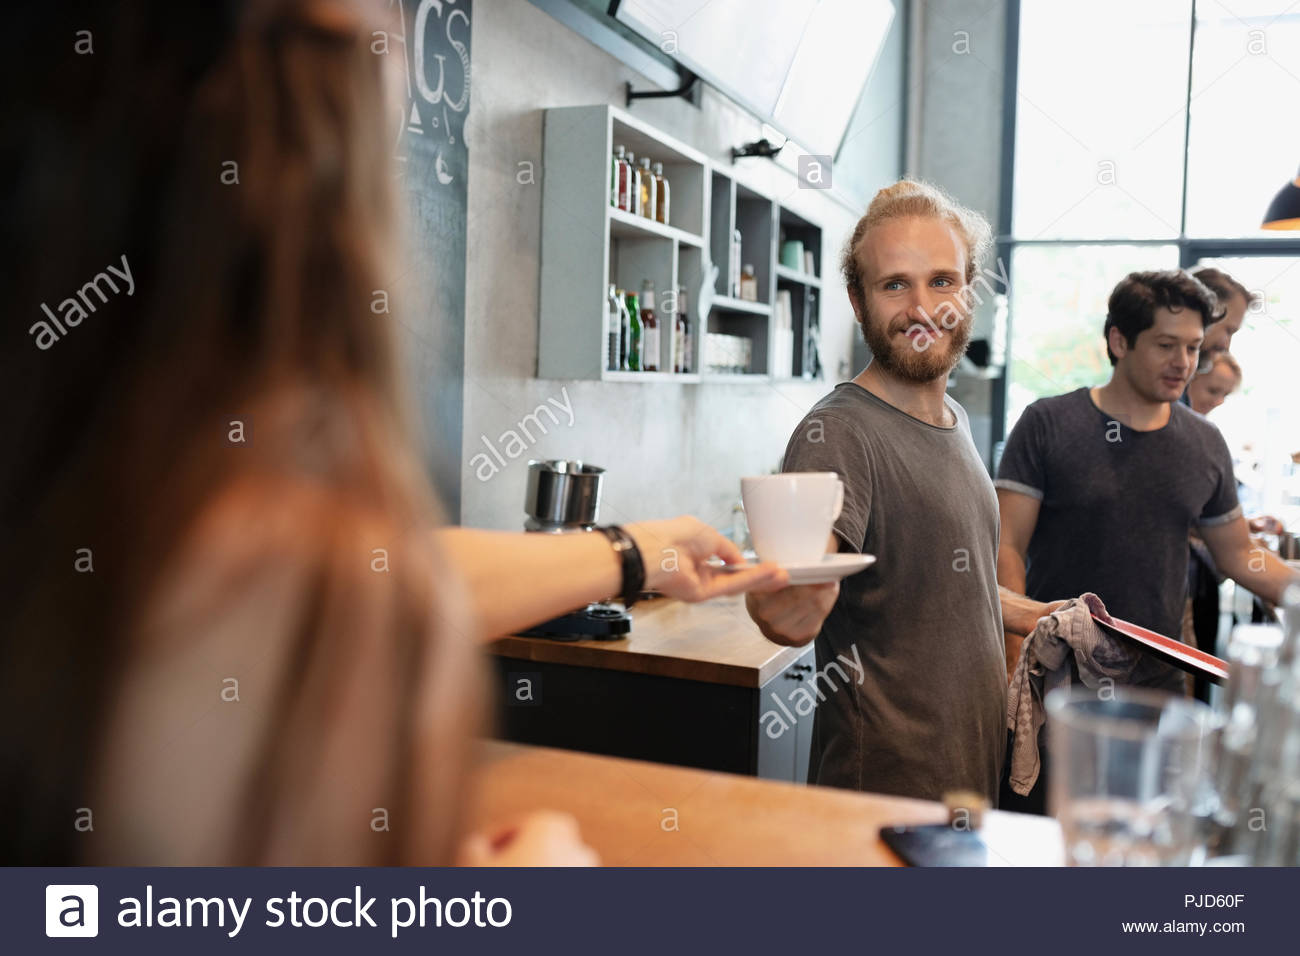 Barista serving coffee to customer in cafe - Stock Image